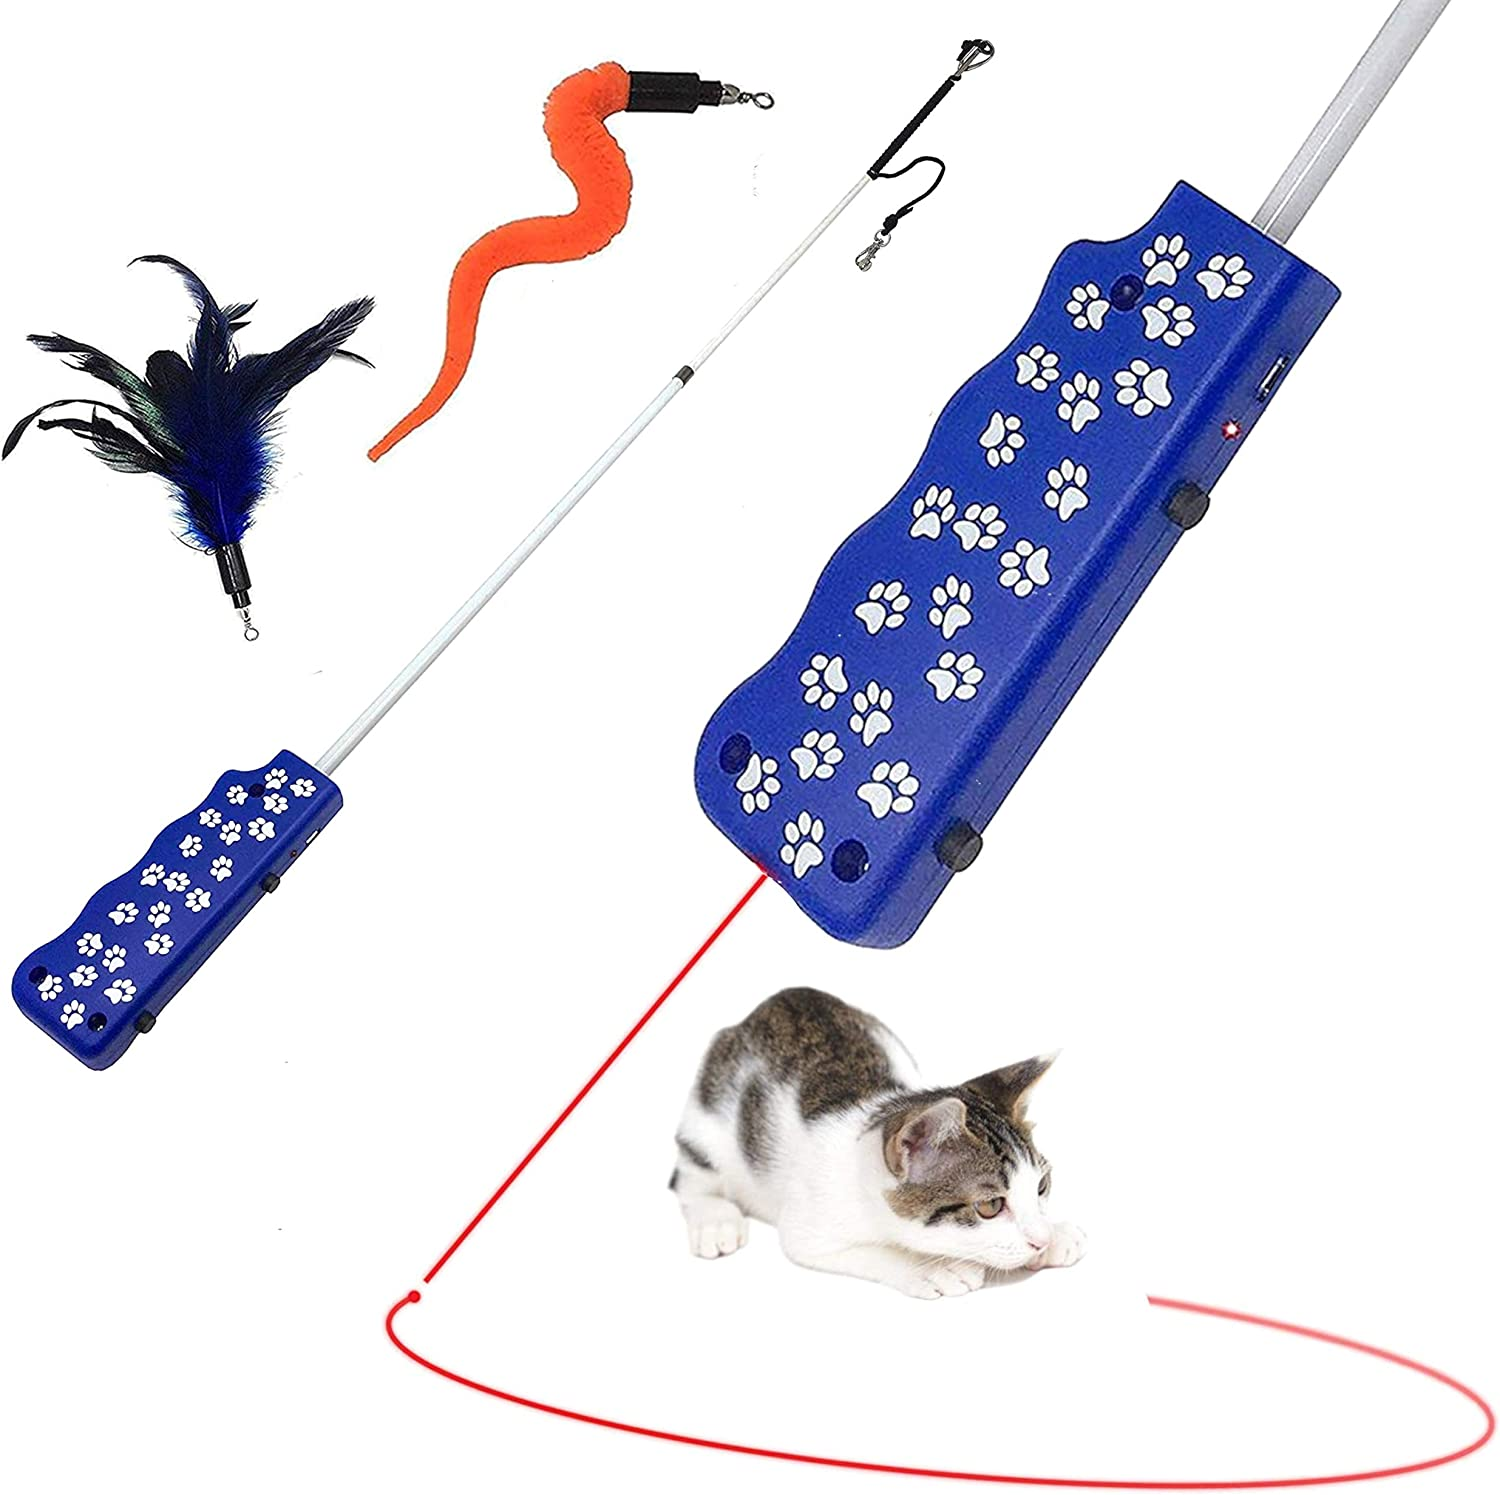 8. Pet Fit For Life Wand & LED Laser Combo Cat To